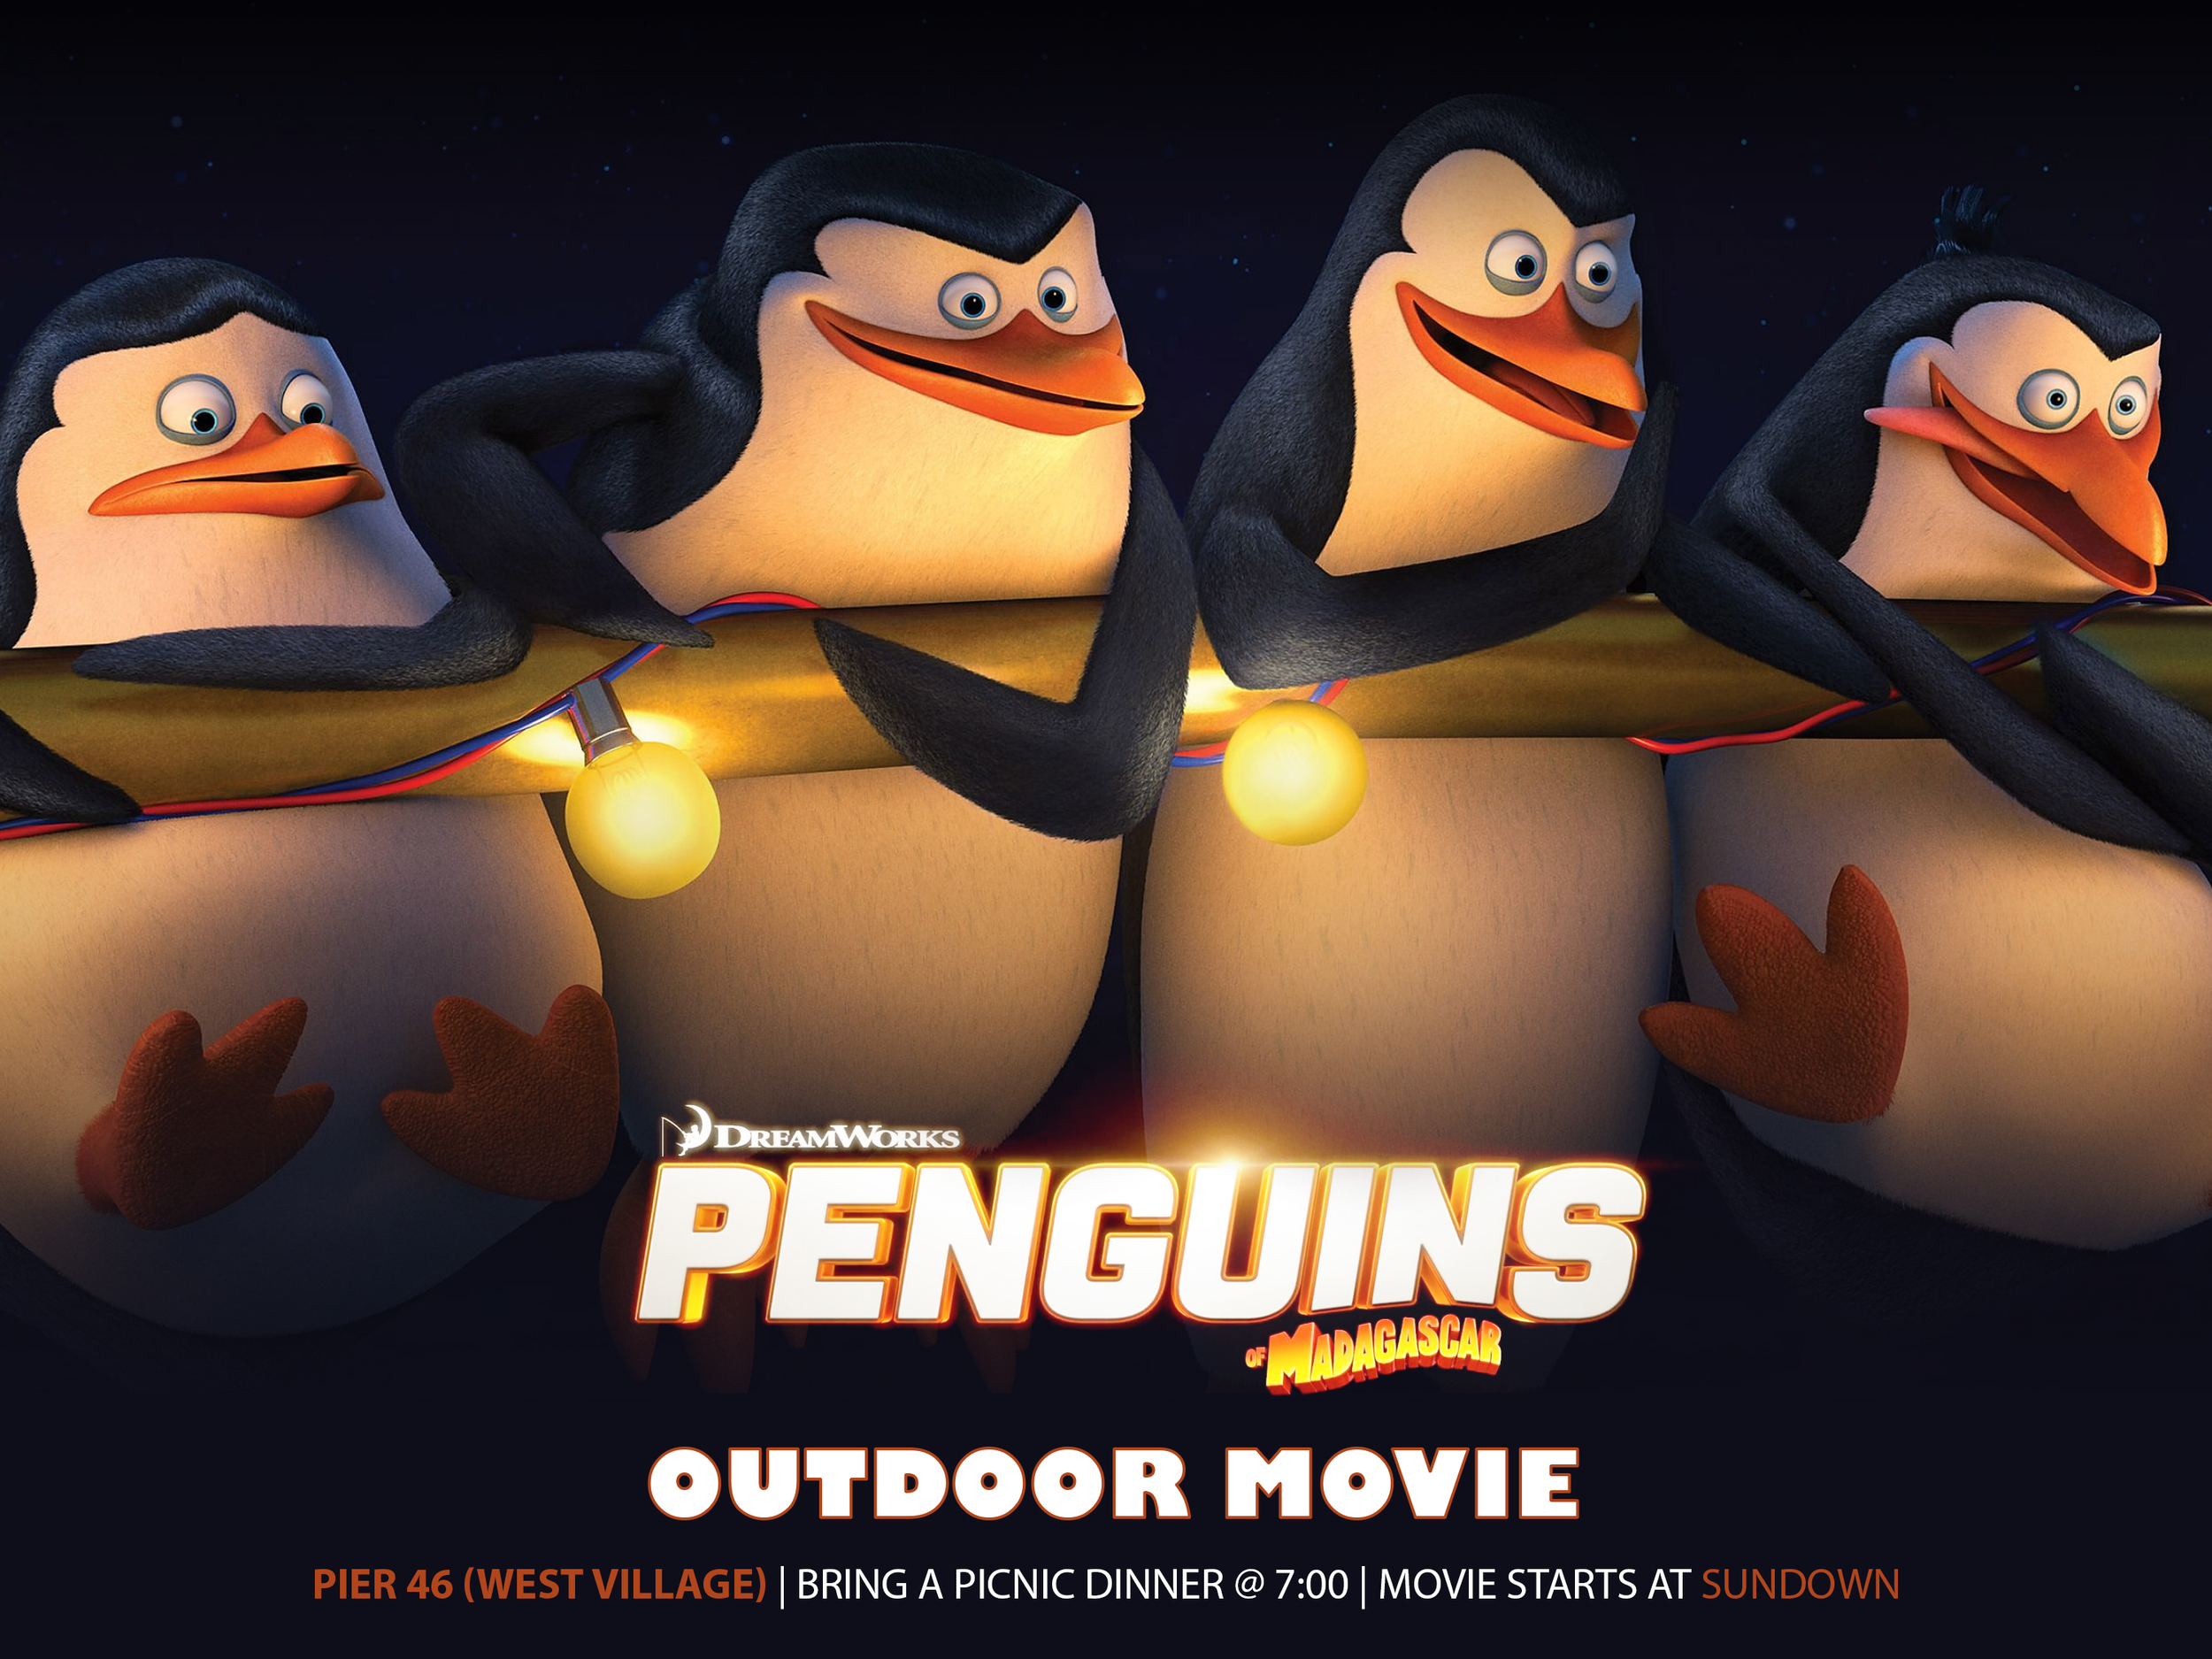 Join us for a family-friendly movie night at Pier 46! Movie starts at 8:30 PM, but we will enjoy the outdoors together starting at 6:30!